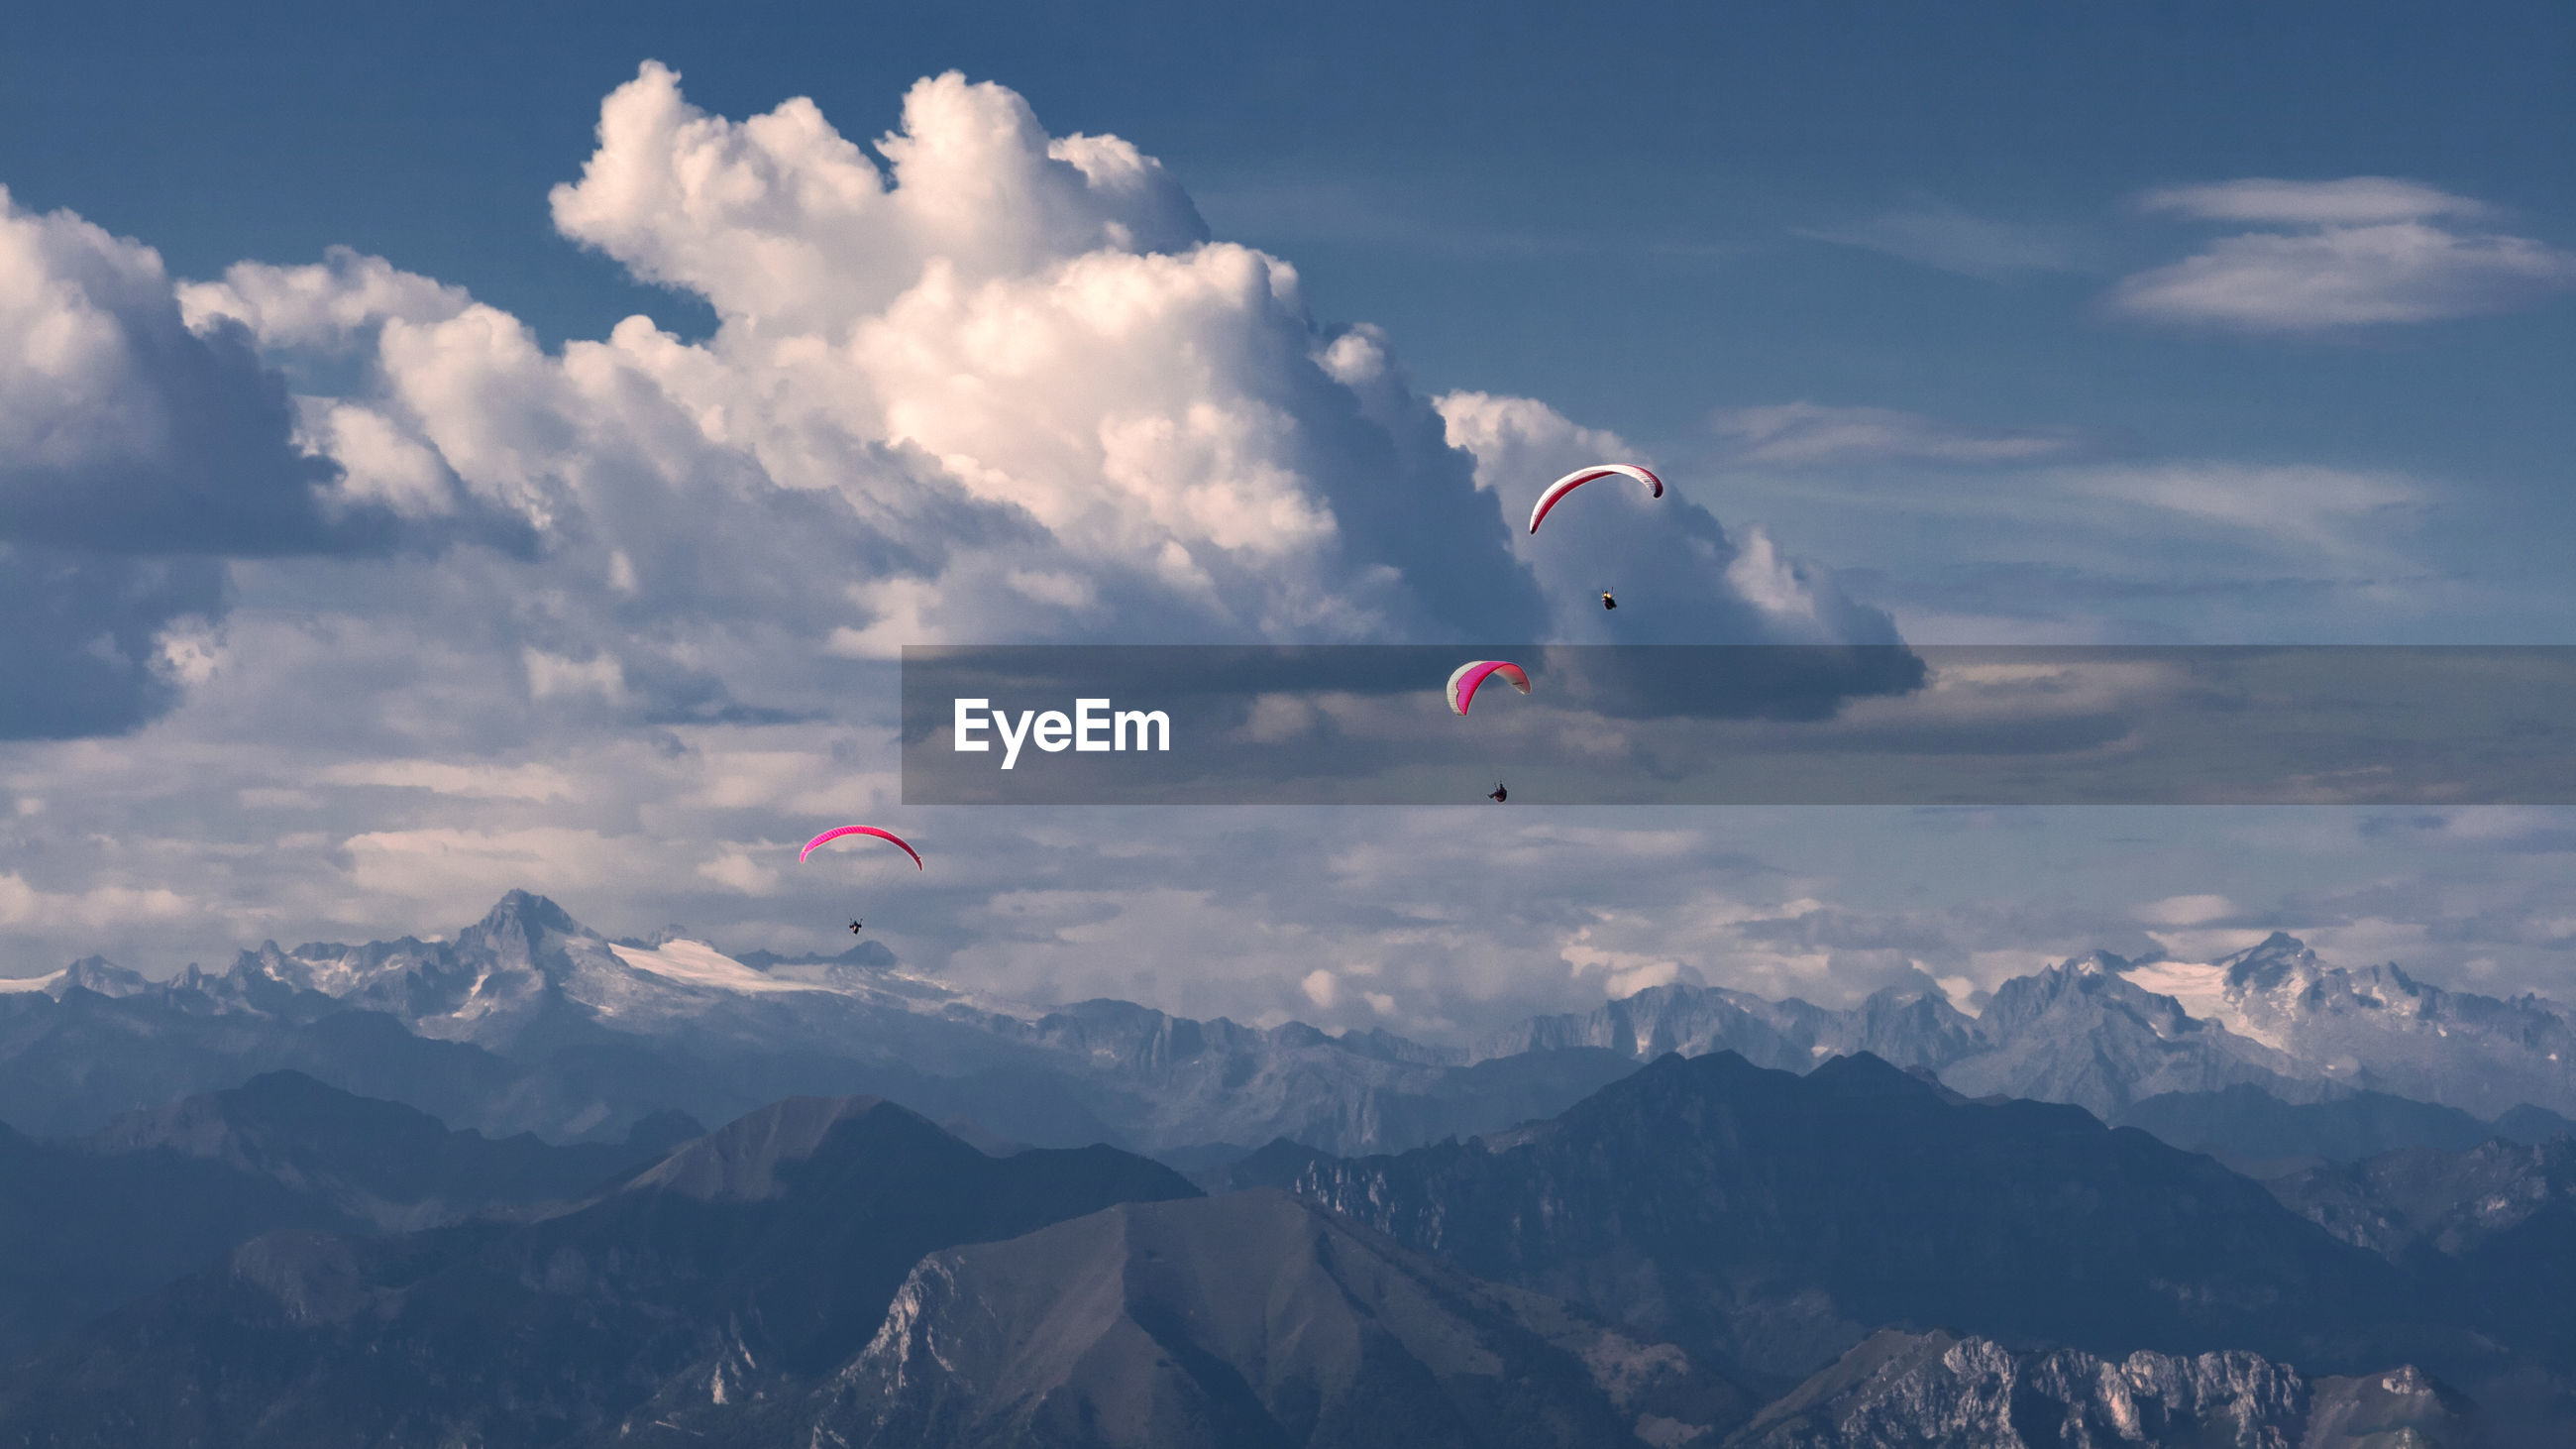 AERIAL VIEW OF MOUNTAINS AND SKY